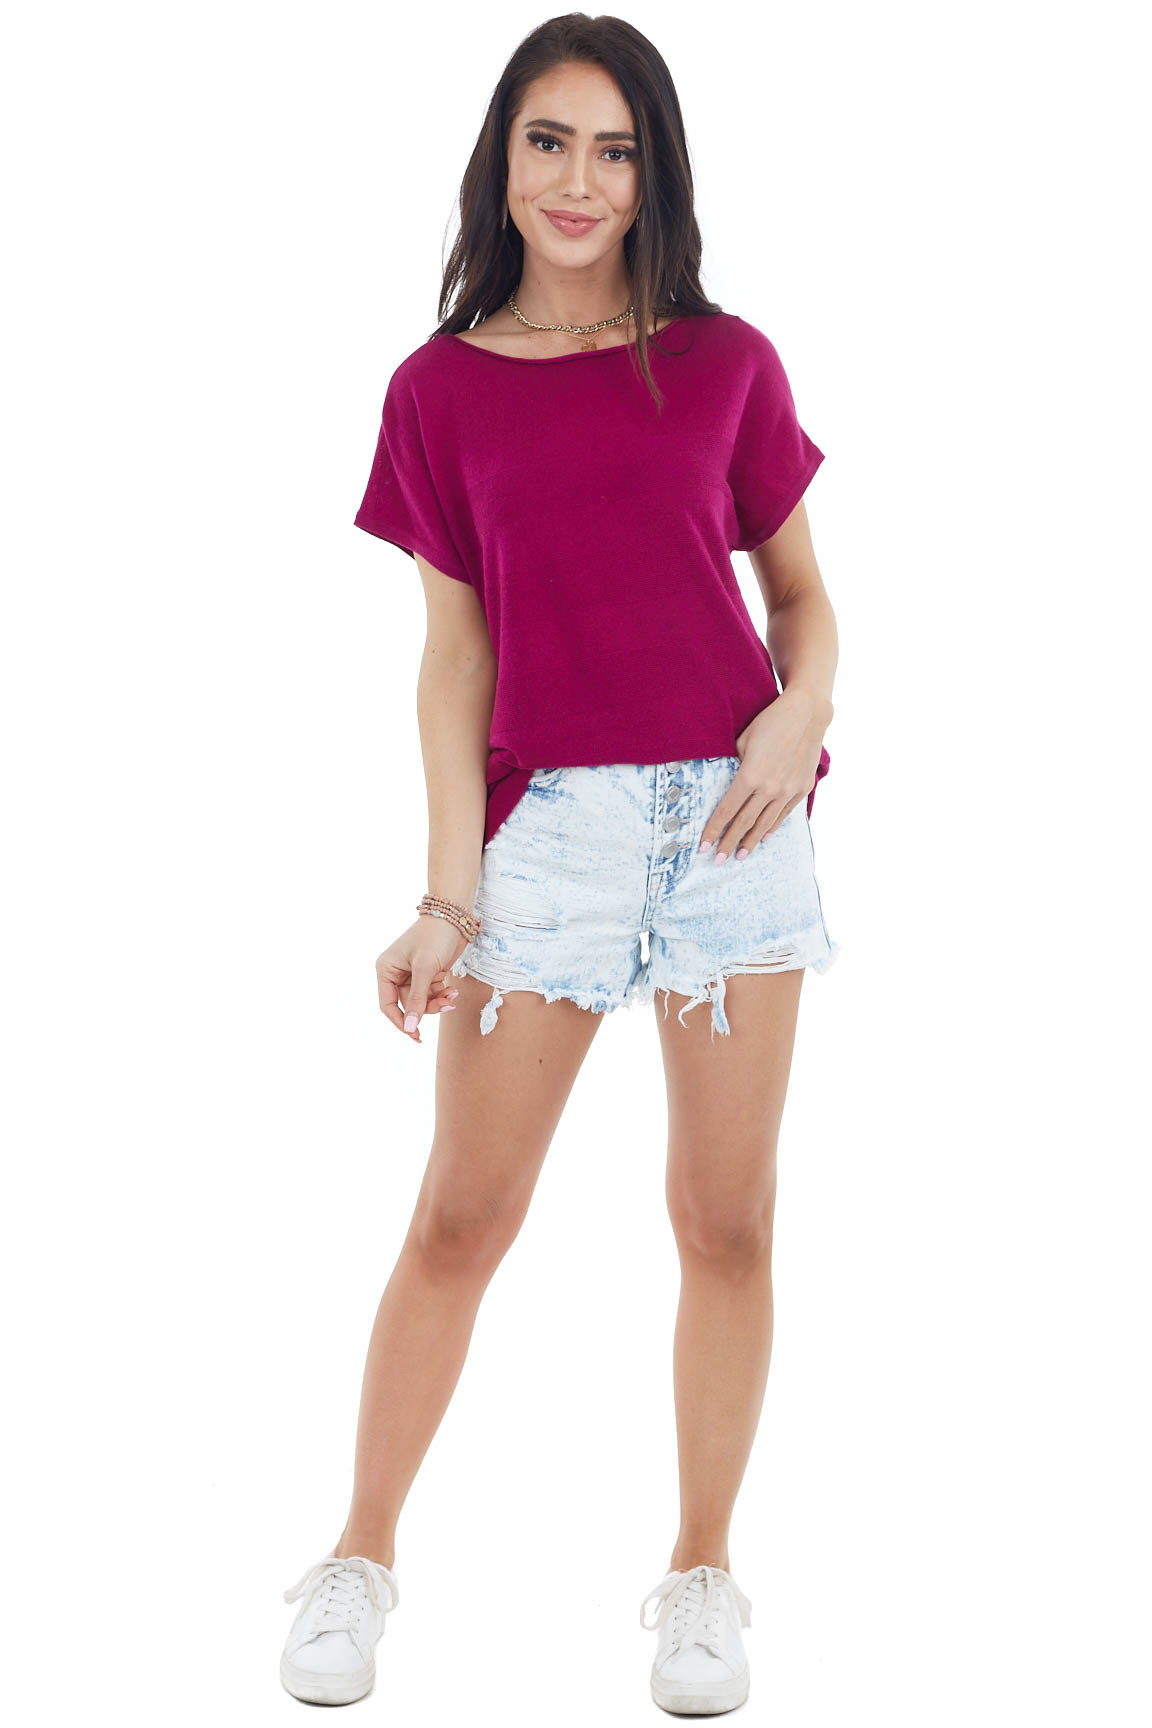 Magenta Textured Striped Knit Top with Short Sleeves